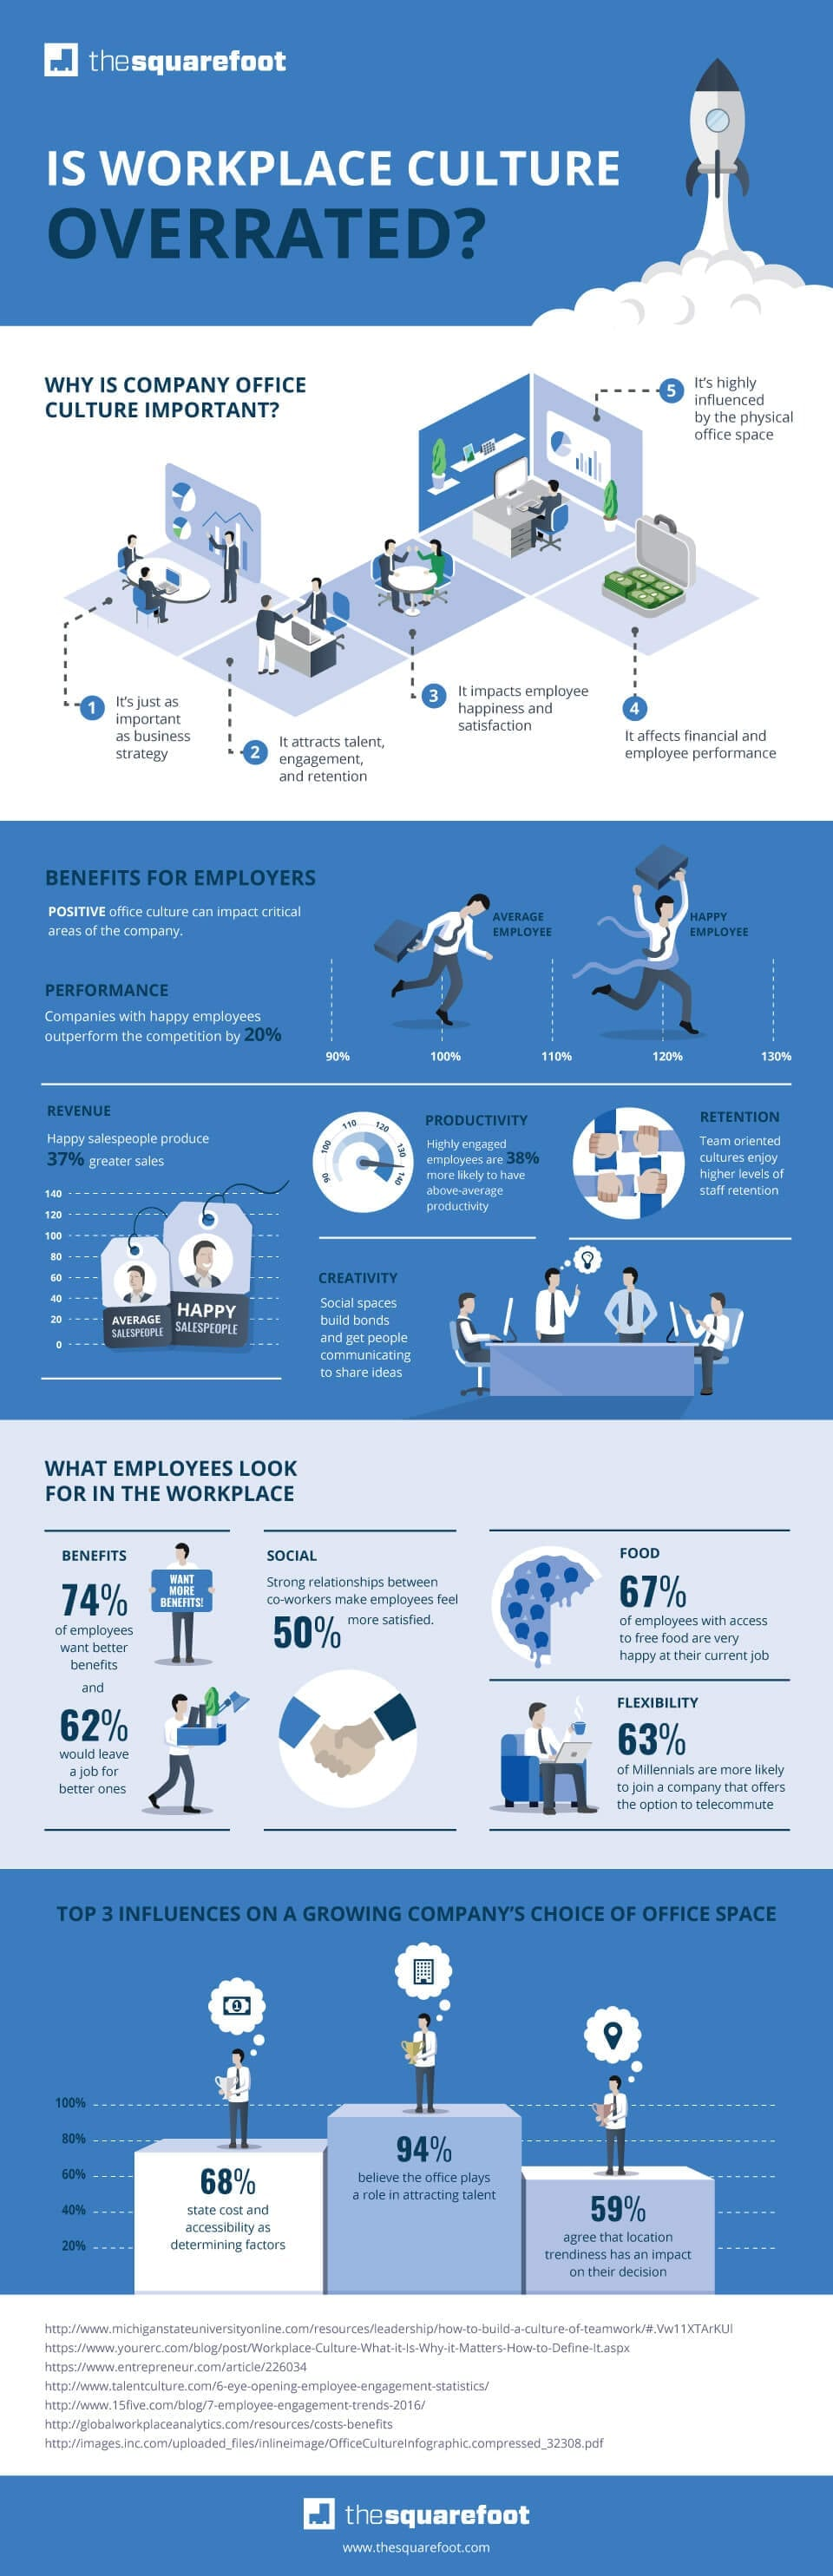 The SquareFoot Workplace Culture Infographic